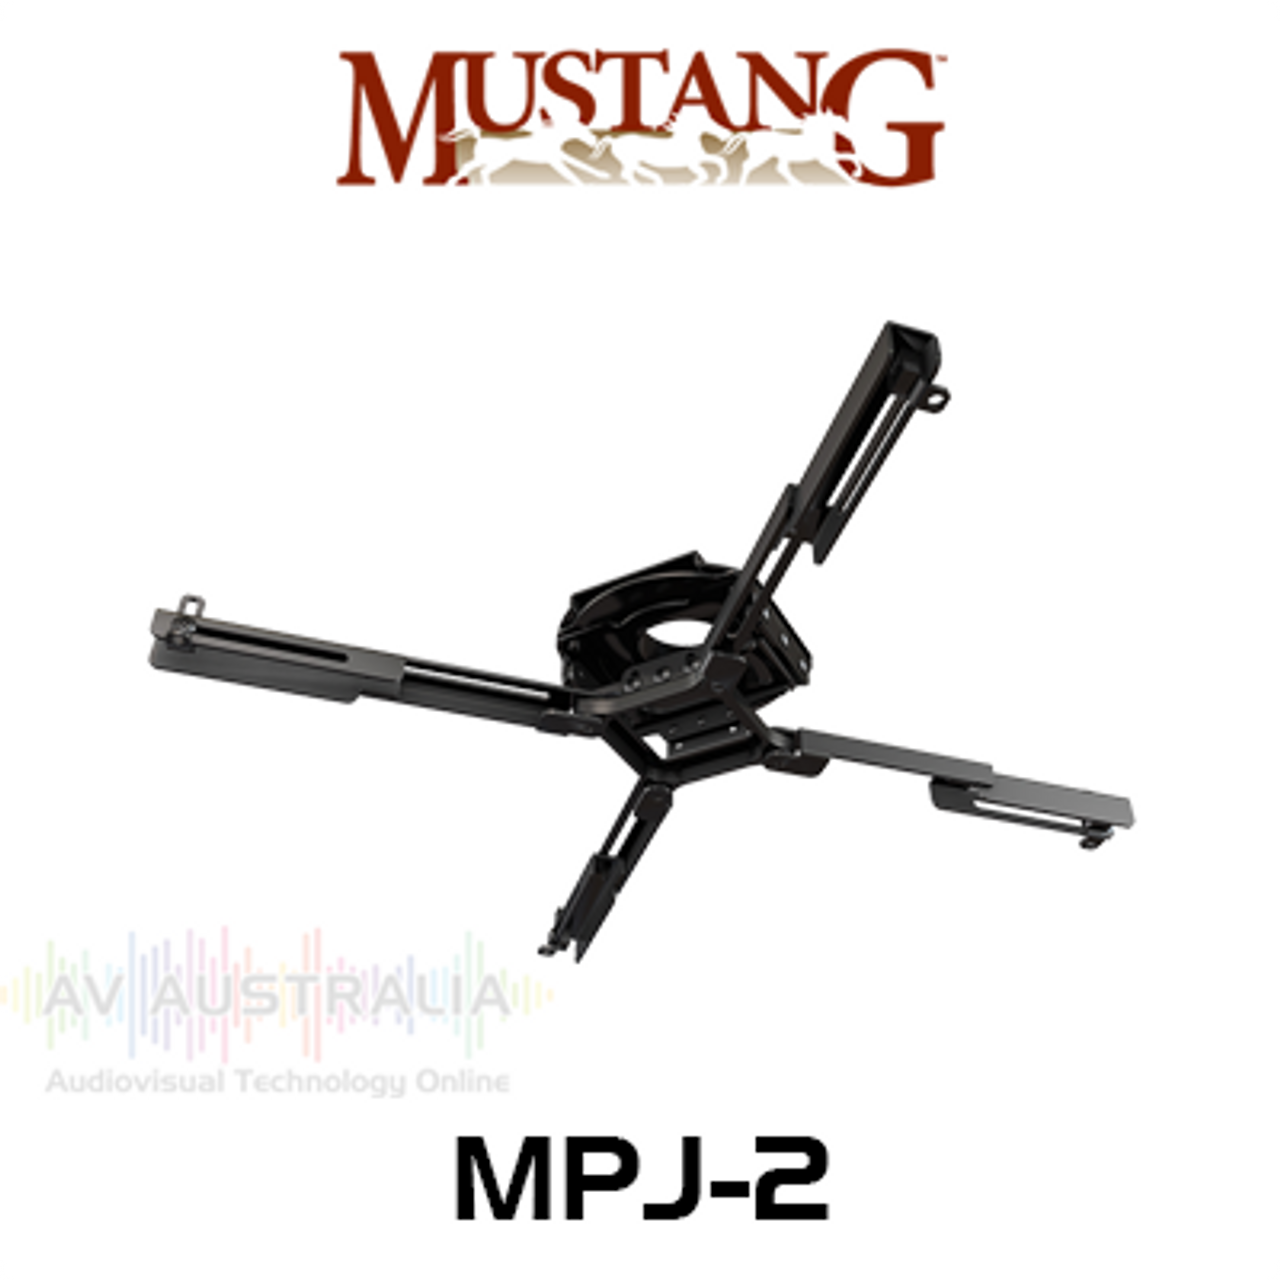 Mustang Pro MPJ-2 Heavy Duty Universal Projector Mount (up to 32kg)